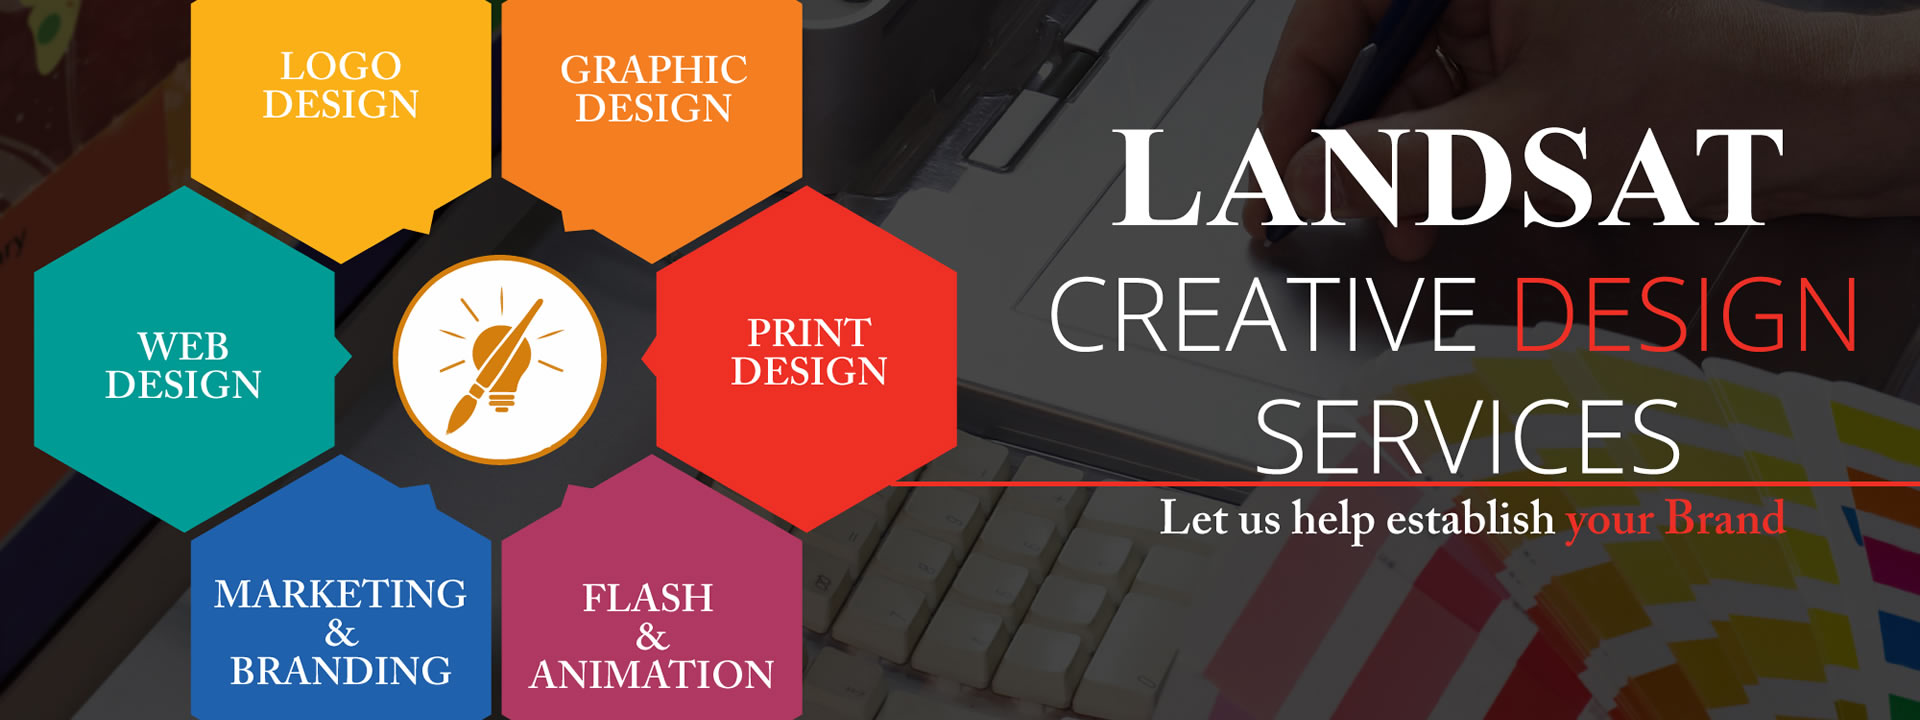 <p>We provide fresh thinking for your business. We take an idea and make it smarter, dressing your business with design and print solutions.</p>